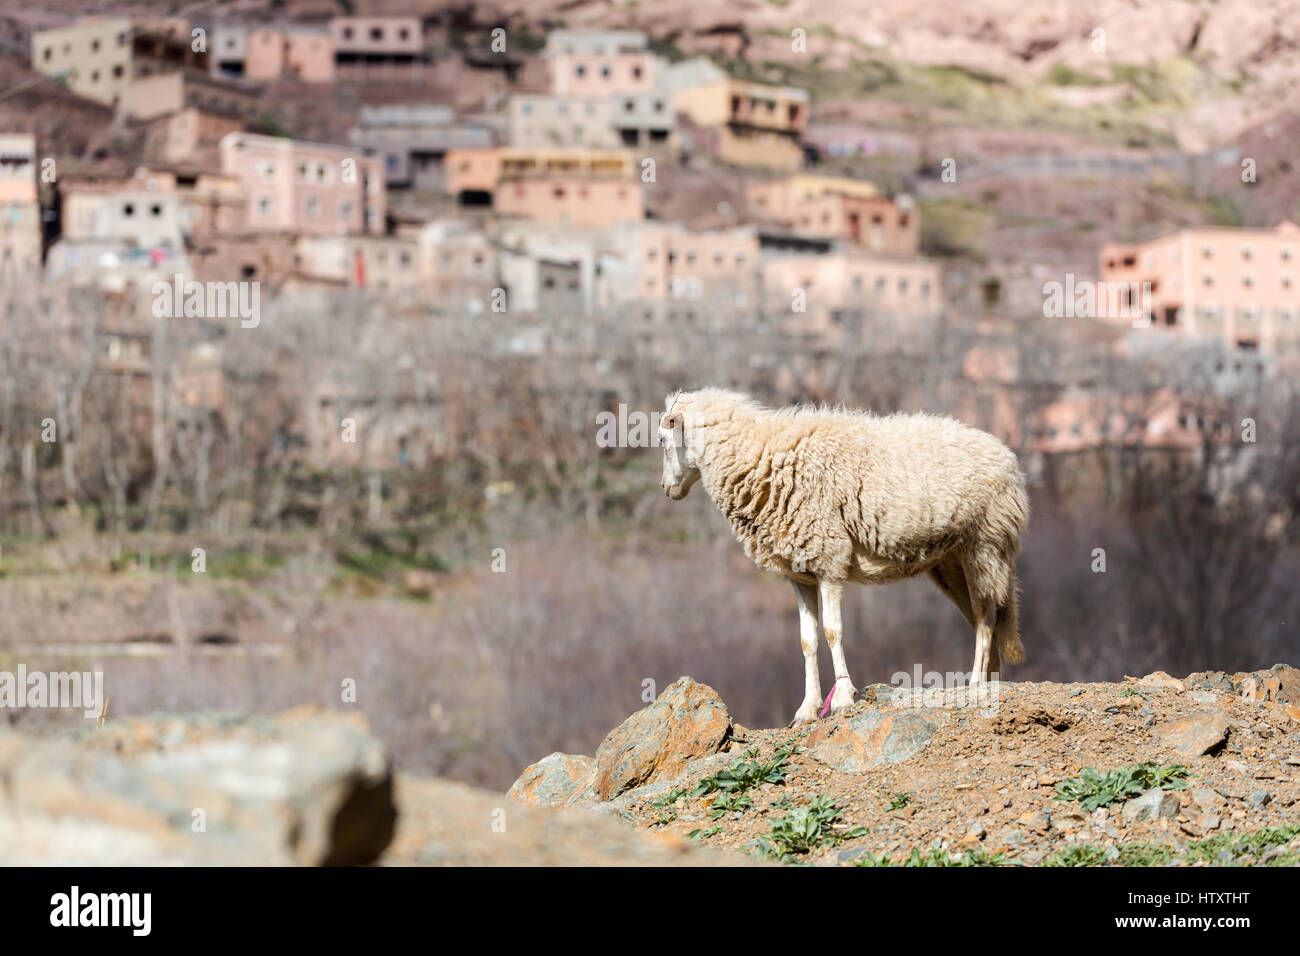 Young new sheep standing on rock edge in Atlas mountains in background berbers village - Stock Image